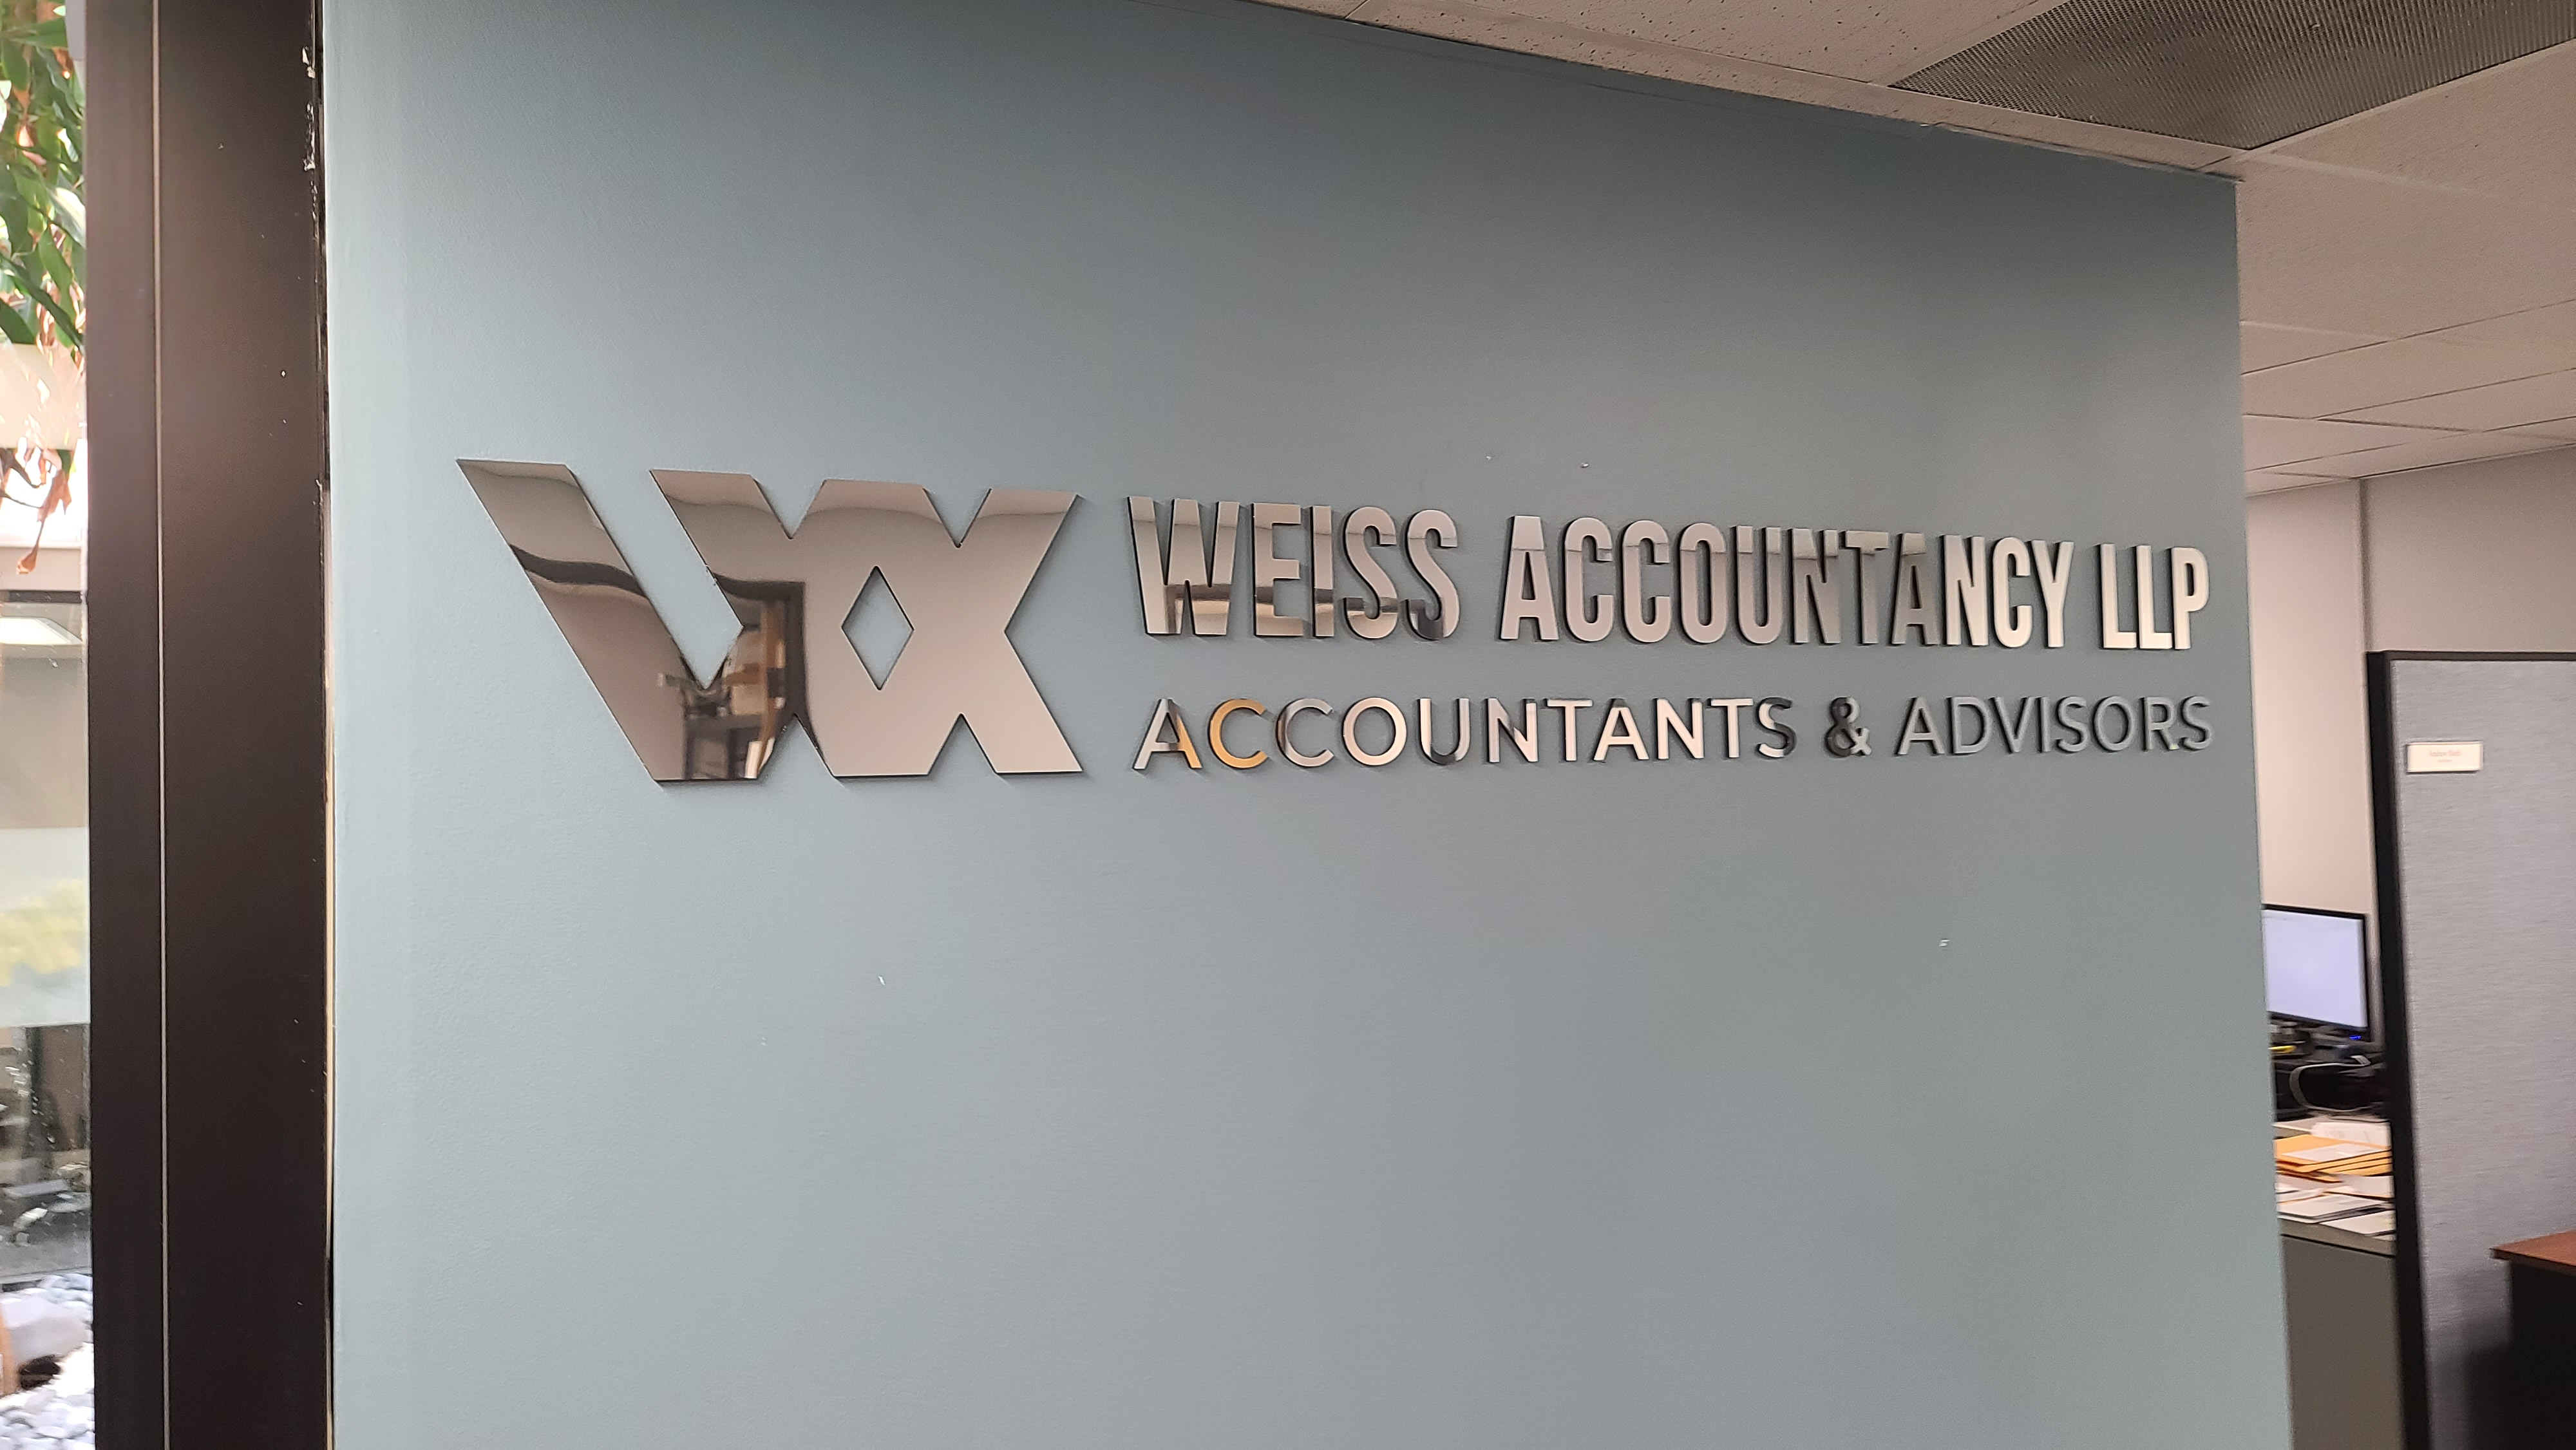 Another lobby sign for our friends at Weiss Accountancy, for their Van Nuys' office. This metal polished acrylic lobby sign is a thing of beauty.